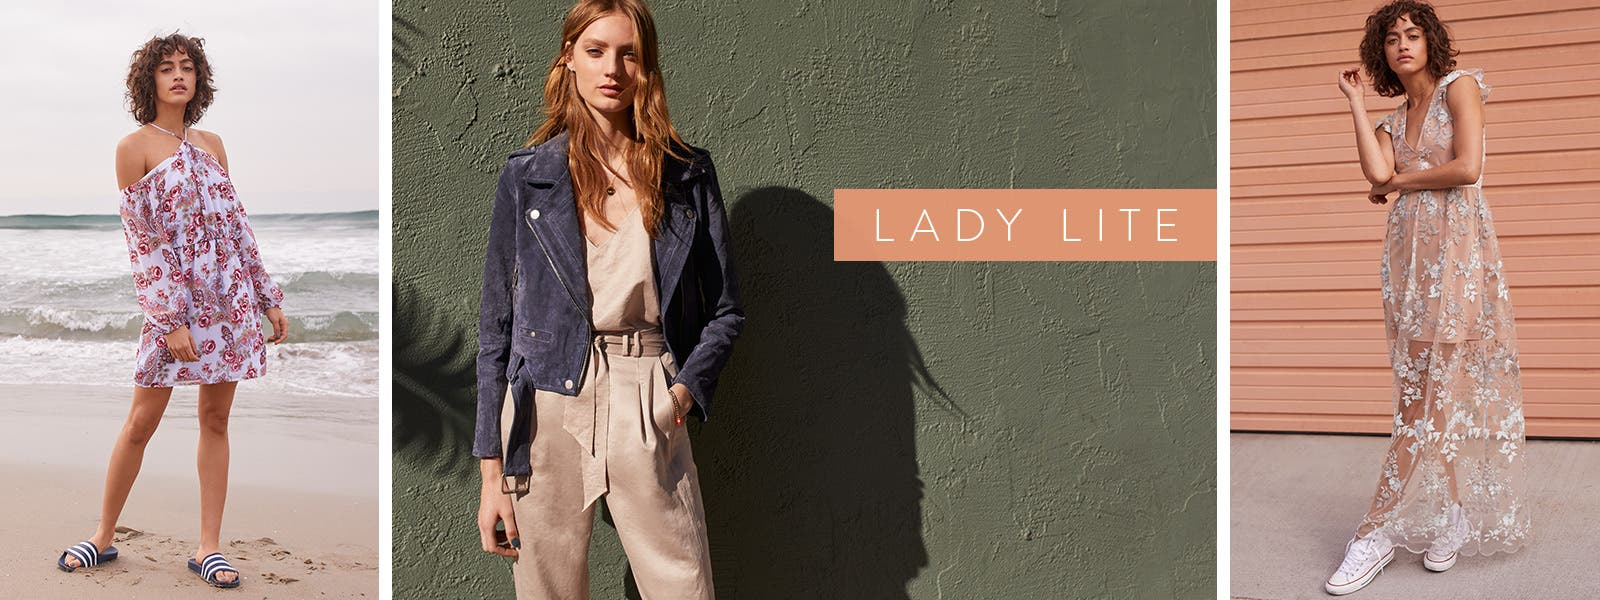 Lady lite: romantic trend clothes with sporty pieces.